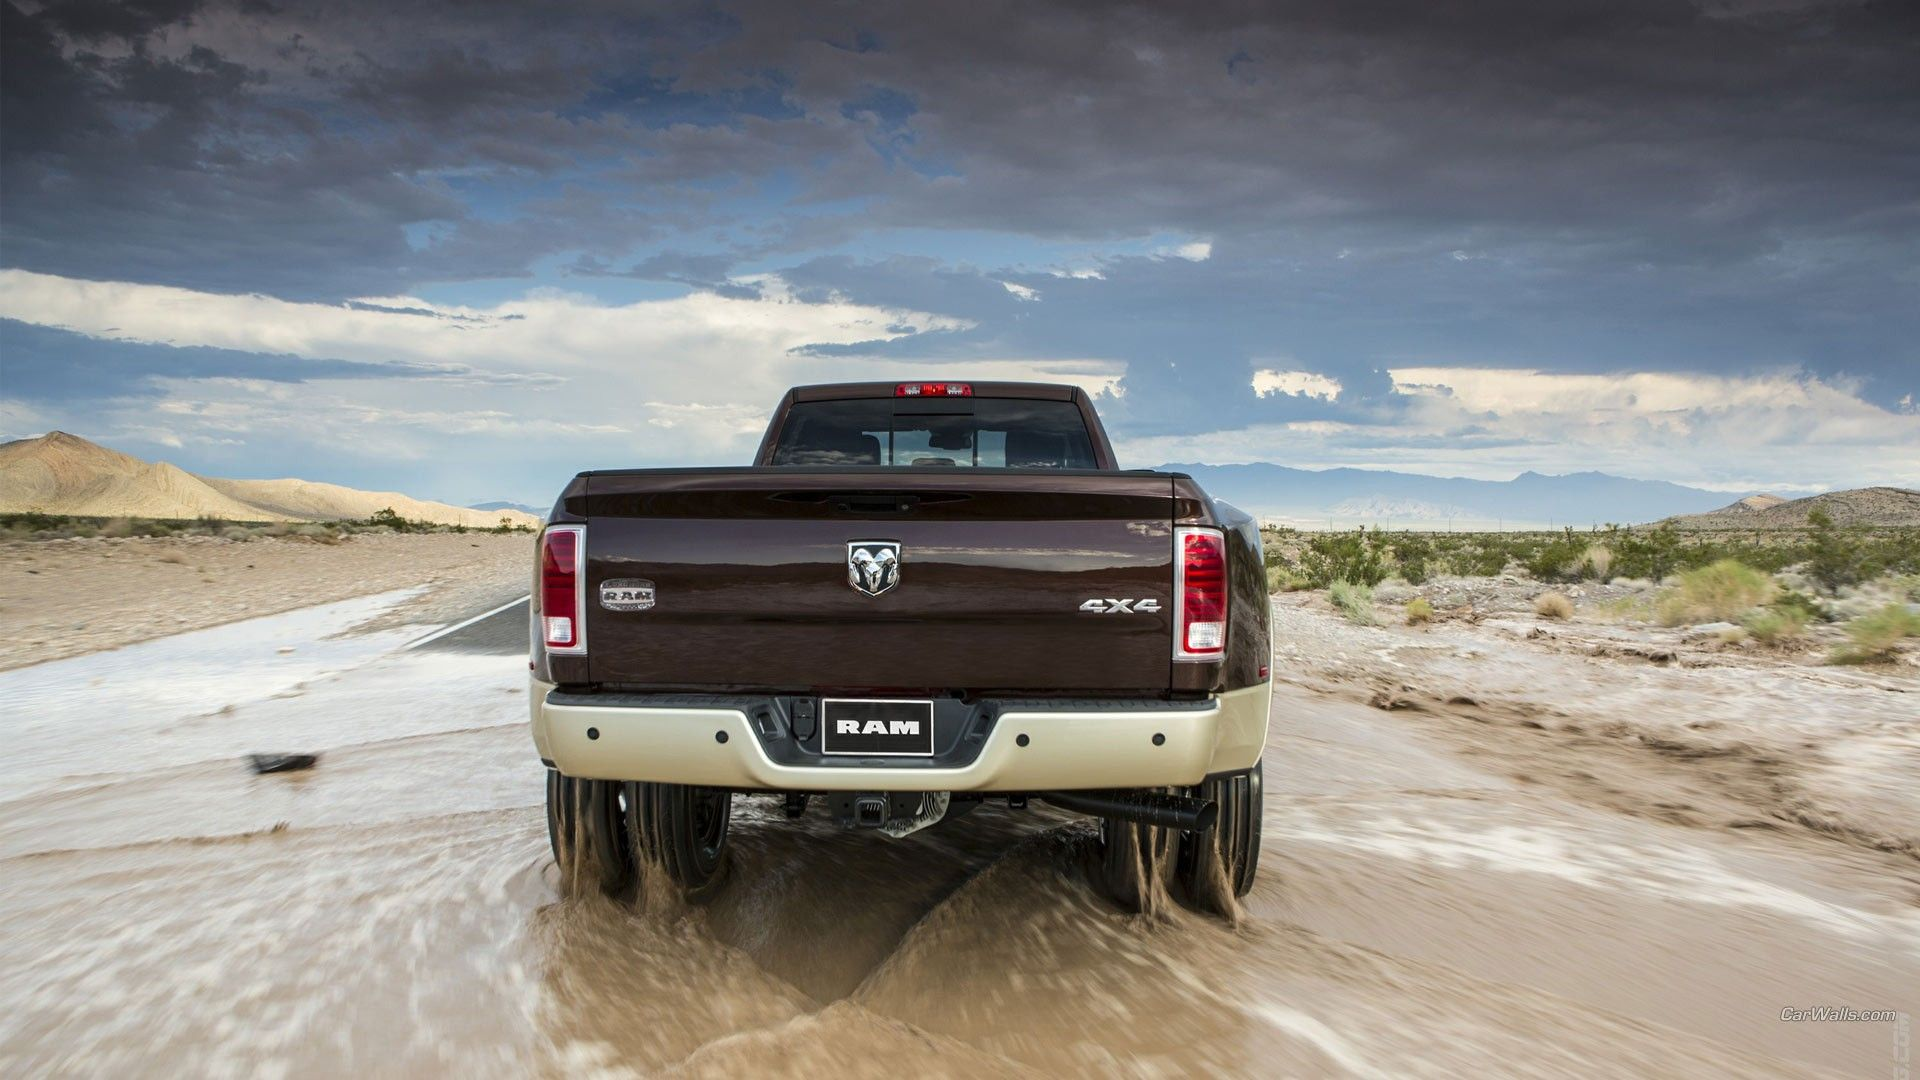 Dodge Ram background picture hd